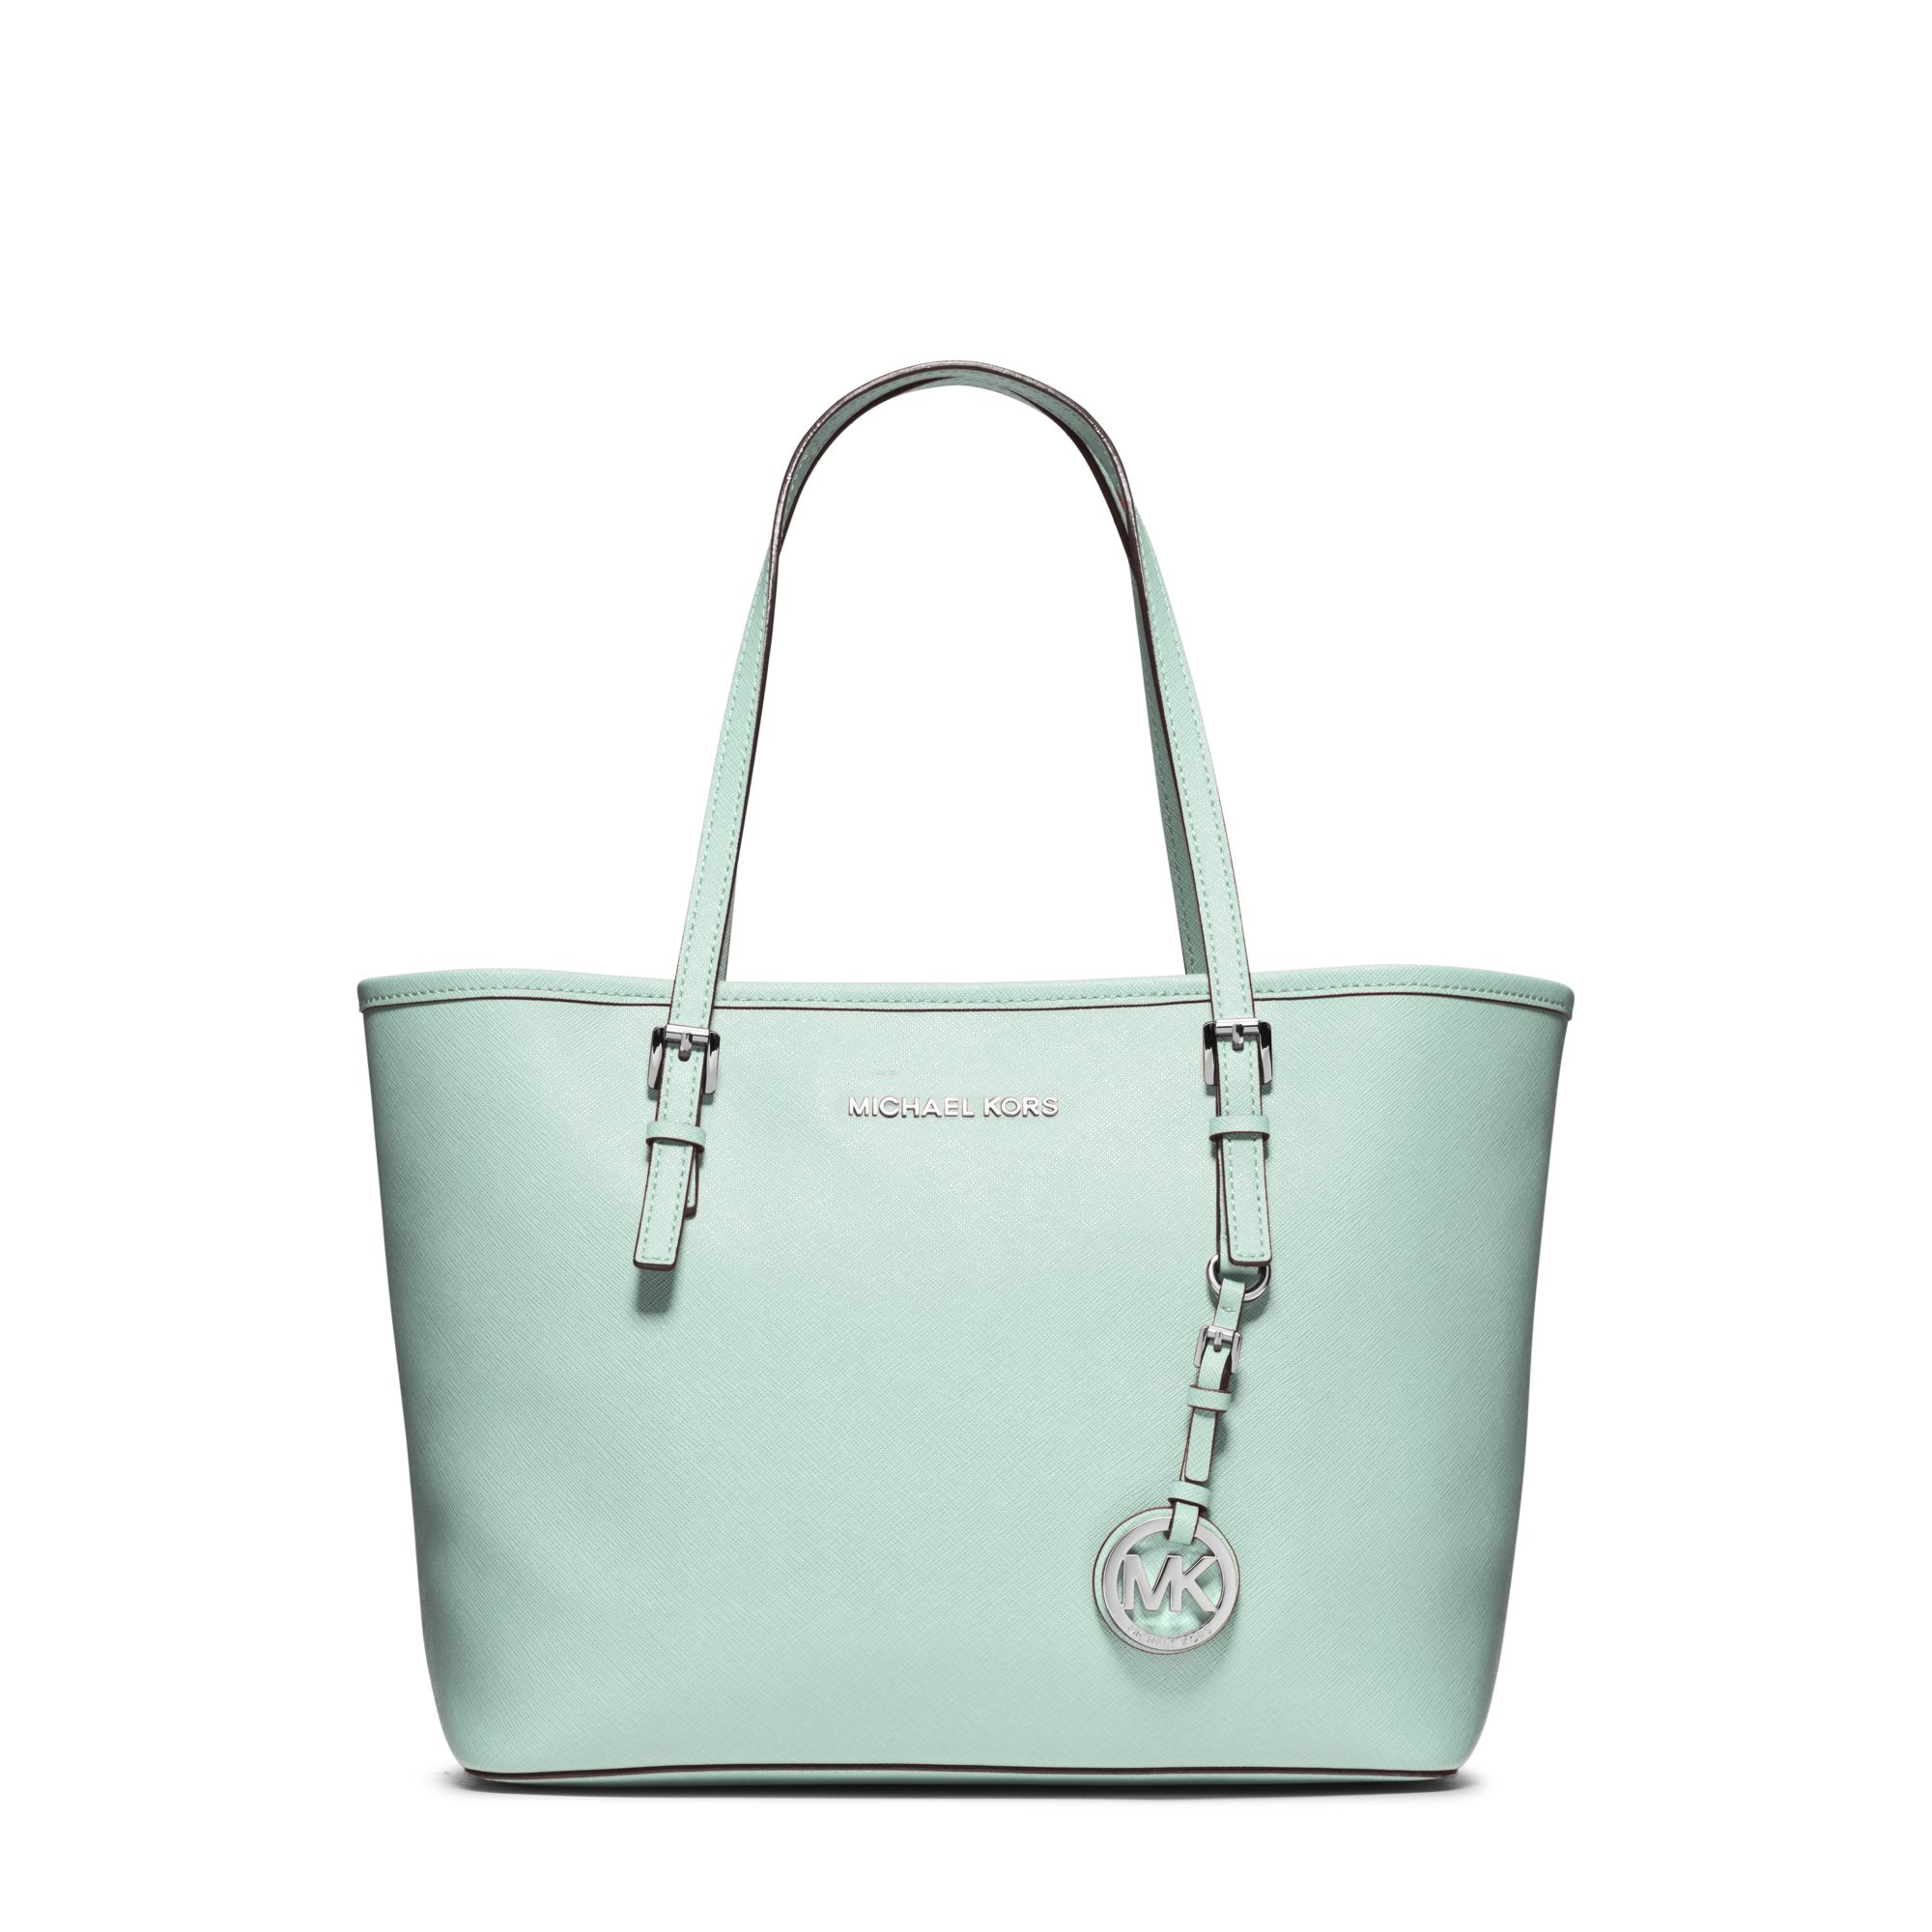 086571617e25d0 Michael Kors Jet Set Travel Small Saffiano Leather Tote in Green - Lyst